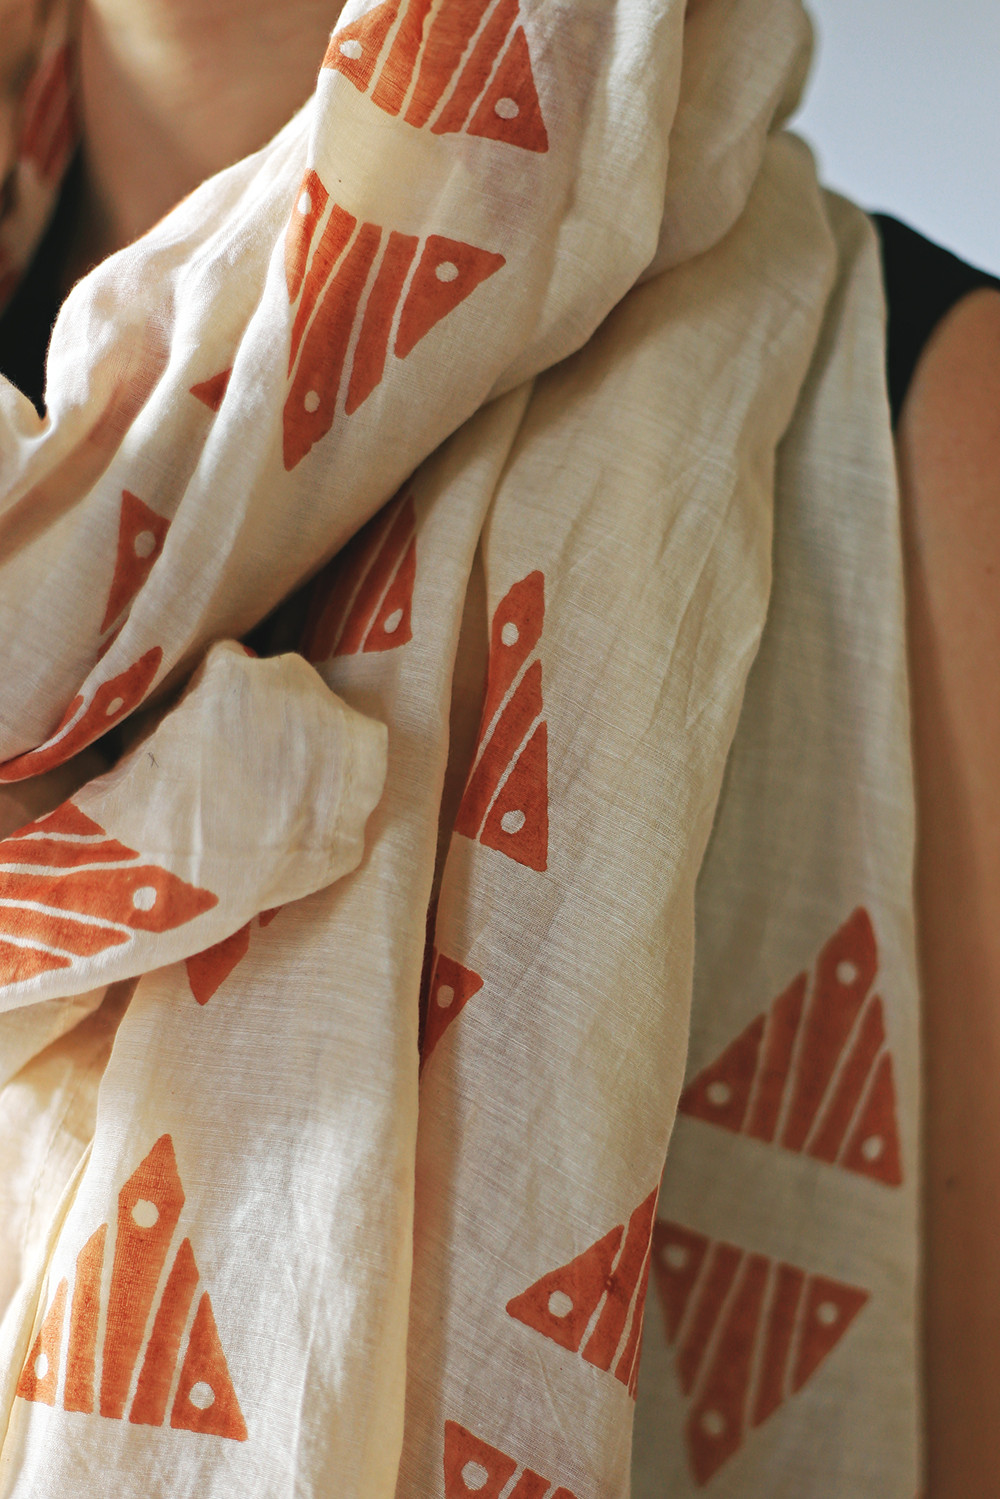 Triangles usually denote rice sheaves or man made daggers and sharp teeth, protecting the person with this cloth. The spectacularly bold motif is designed by Anya Lim from Anthill Fabric Gallery as part of the Then&There edition. Its geometrical, angular rhythm is inspired by the Philippines' namesake as the Sunshine Nation, the rays on the sun in the national flag and carvings on a local gong called Kulintang.